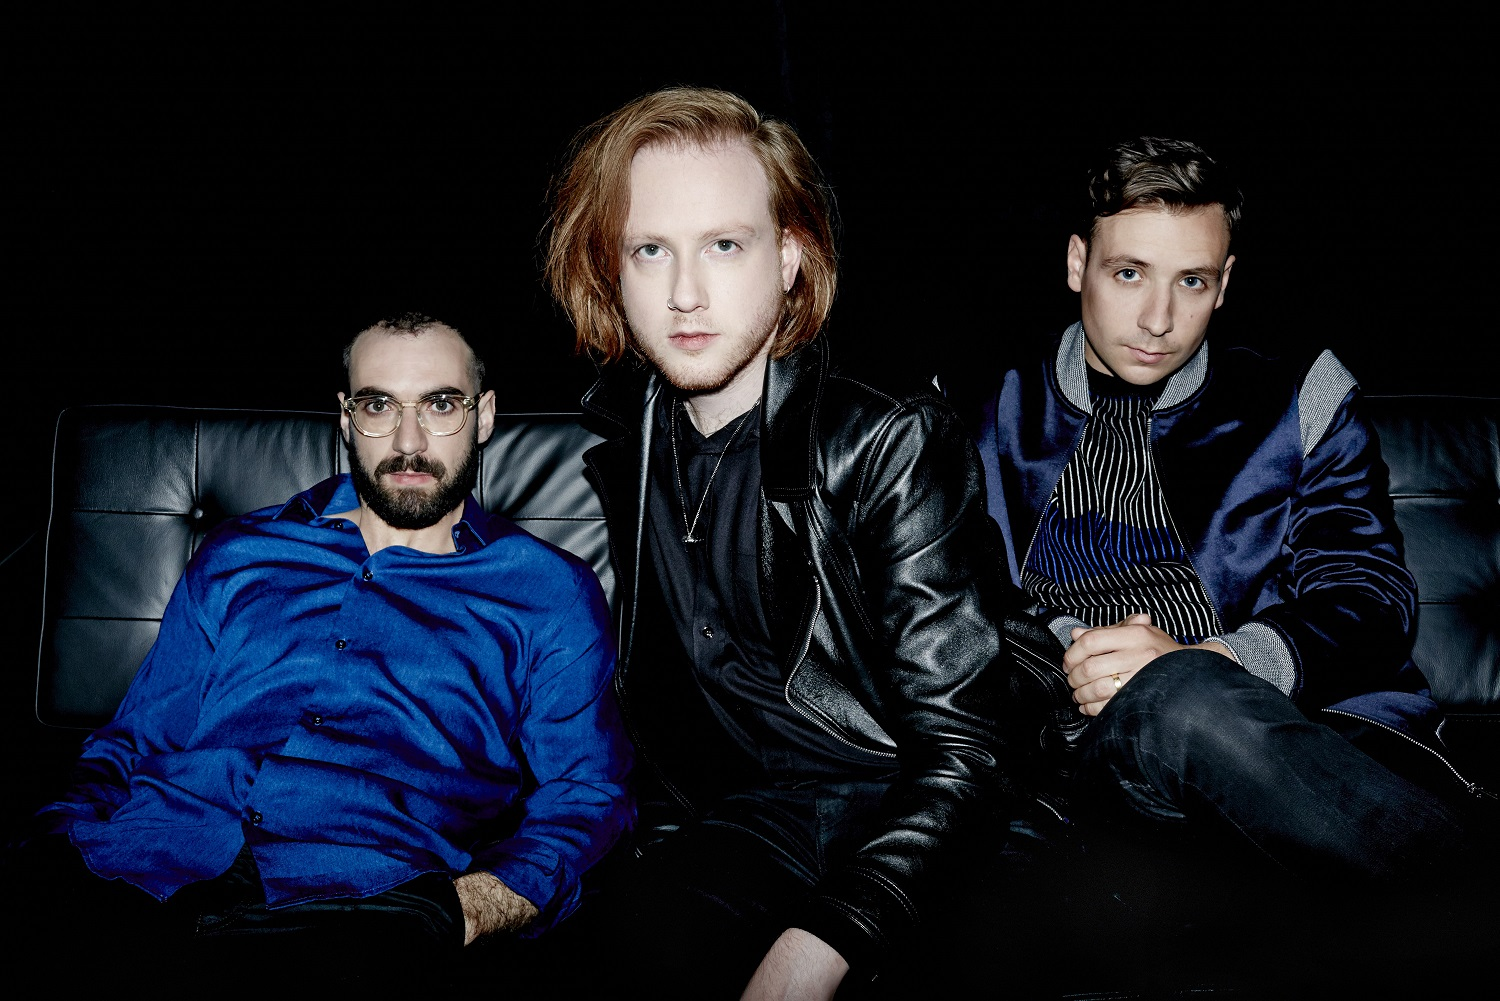 FW: Two Door Cinema Club / Announce Monday